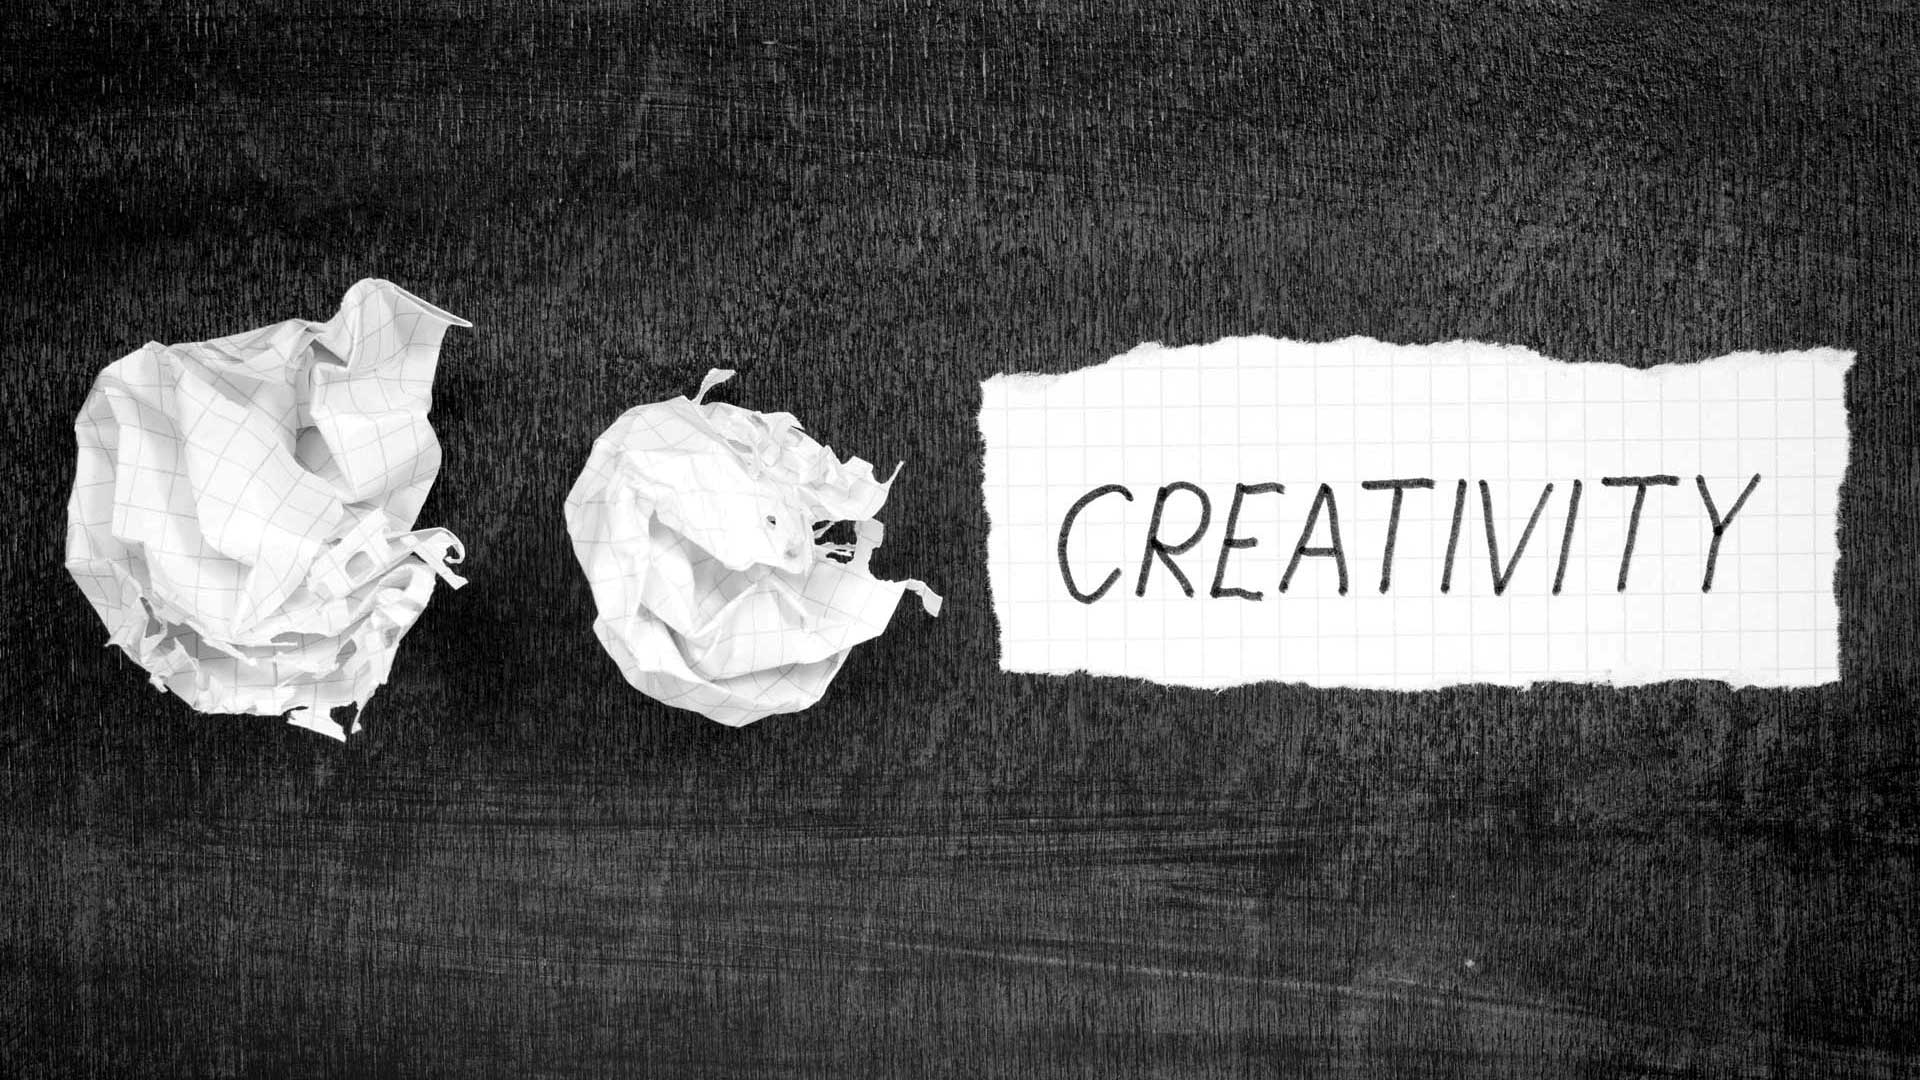 creative website ideas and business strategies